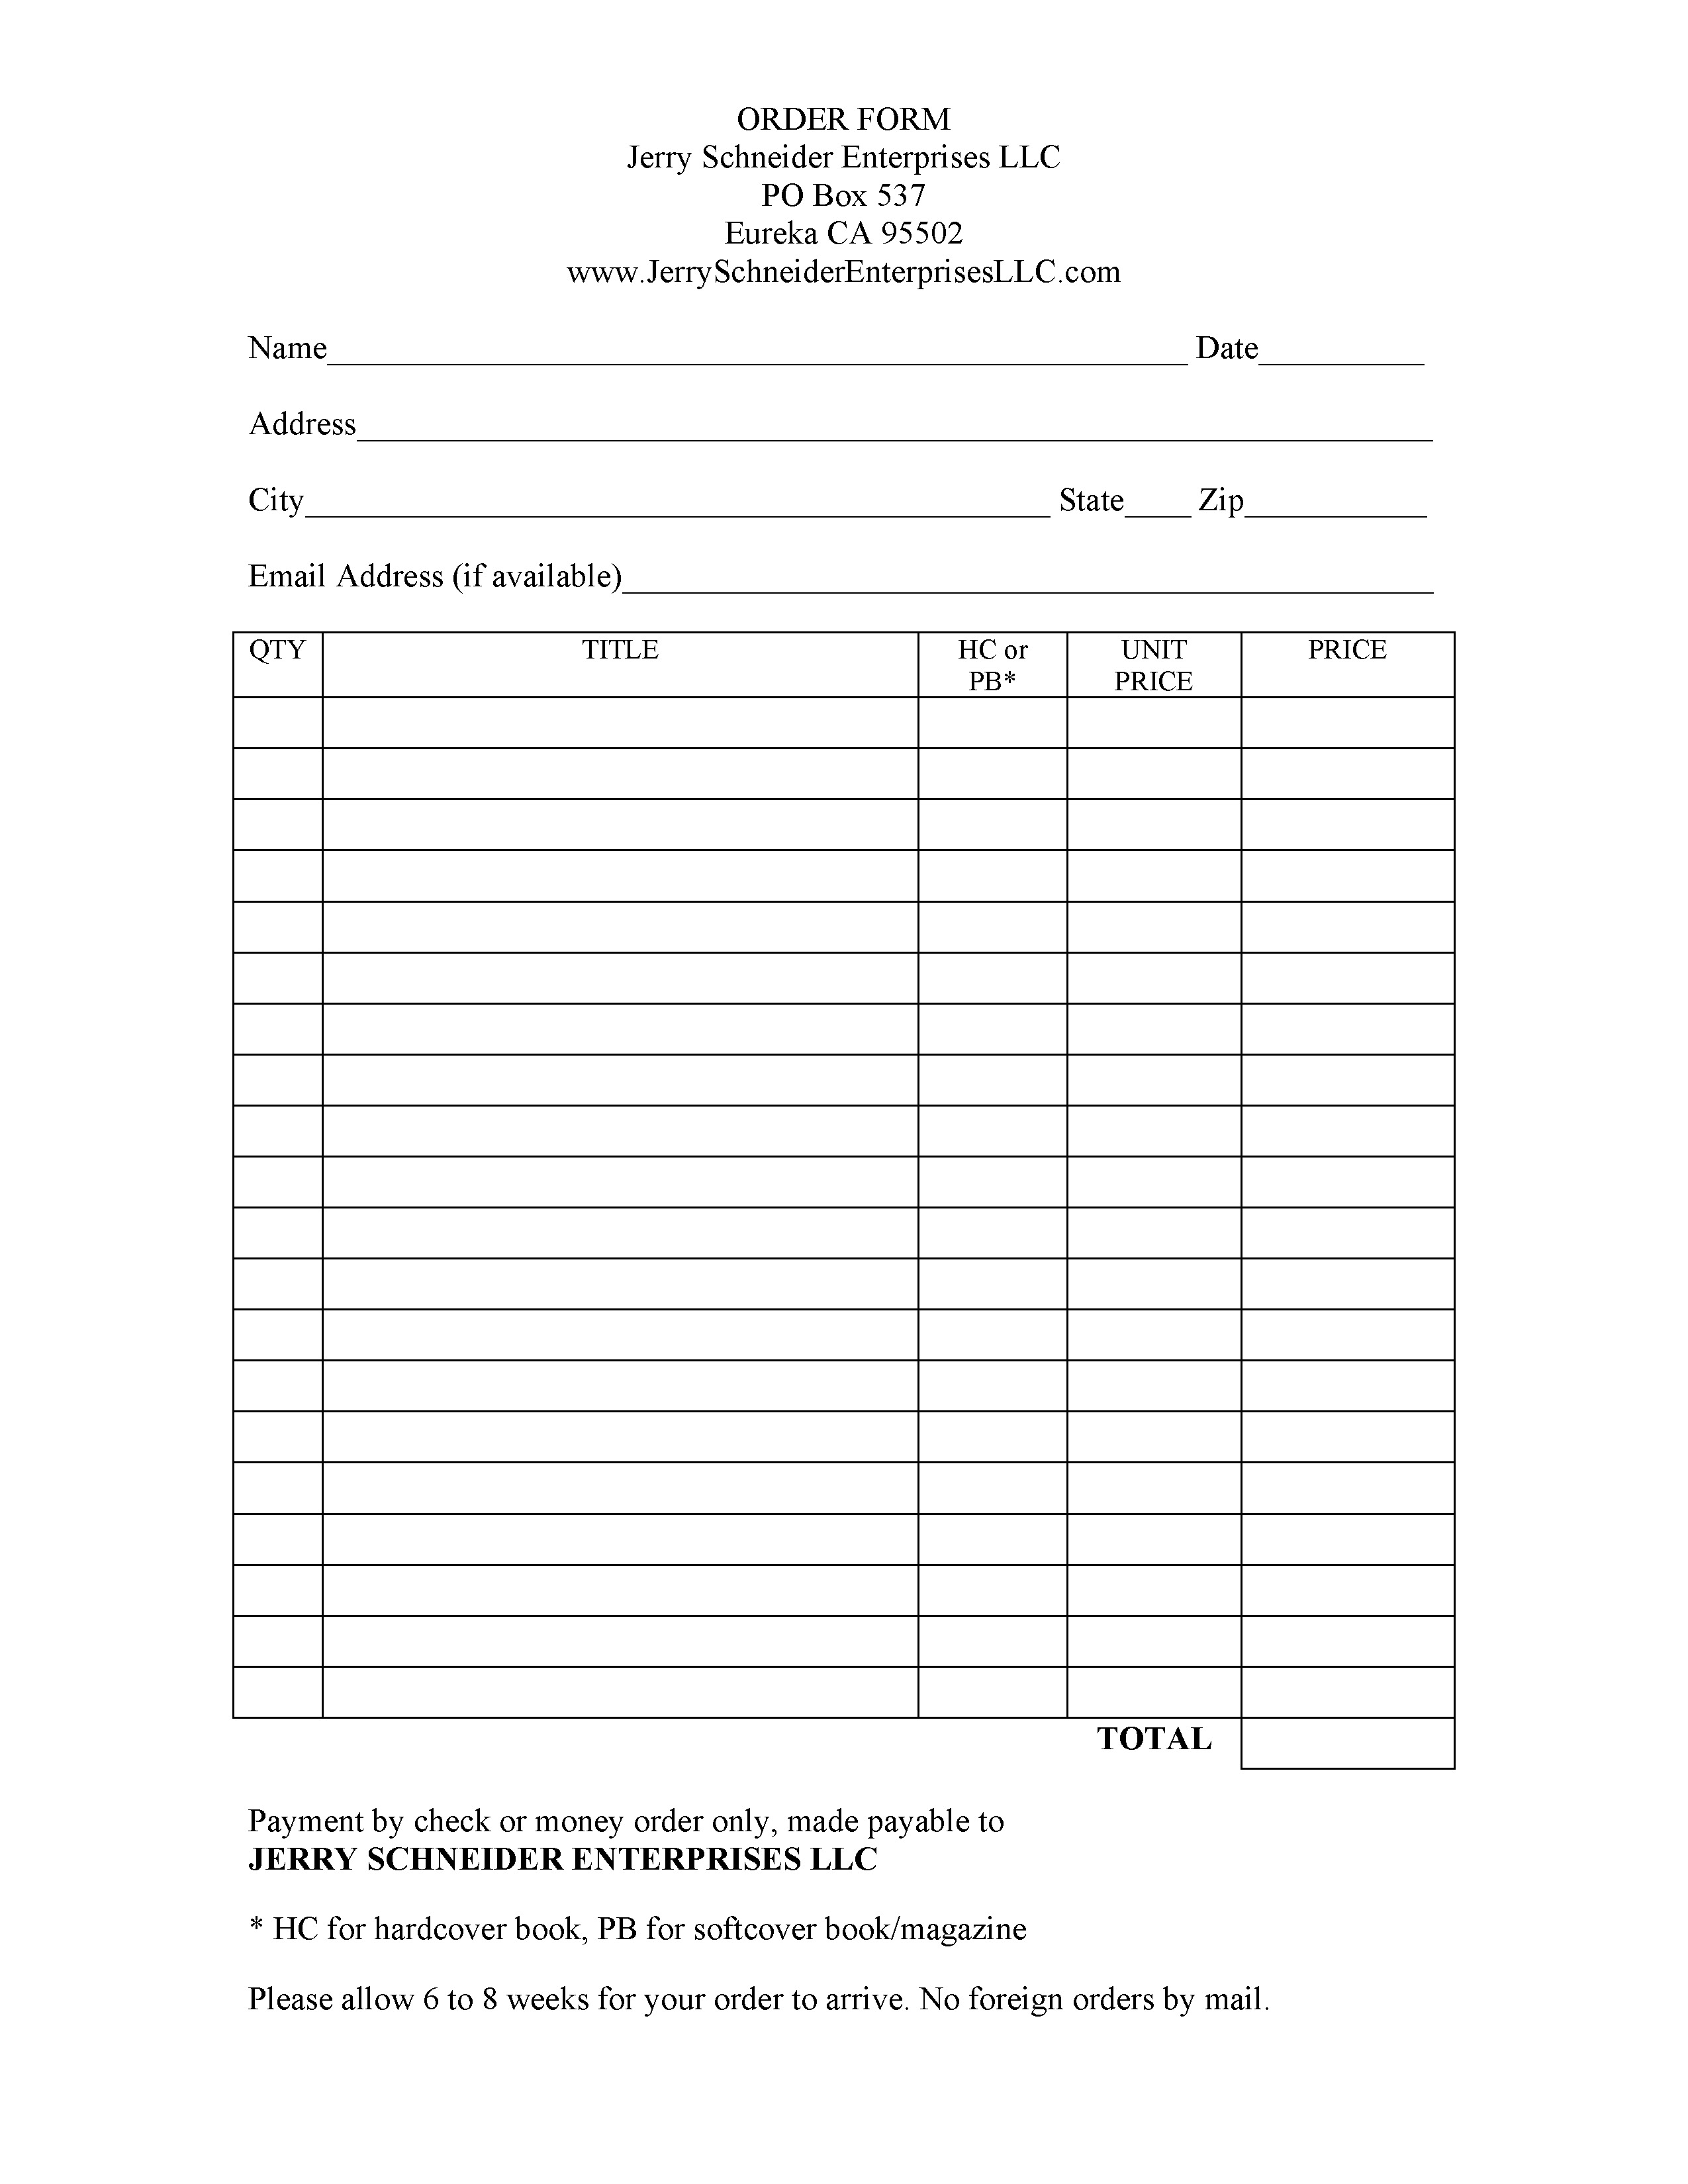 Fiction House Bookstore – Order Form